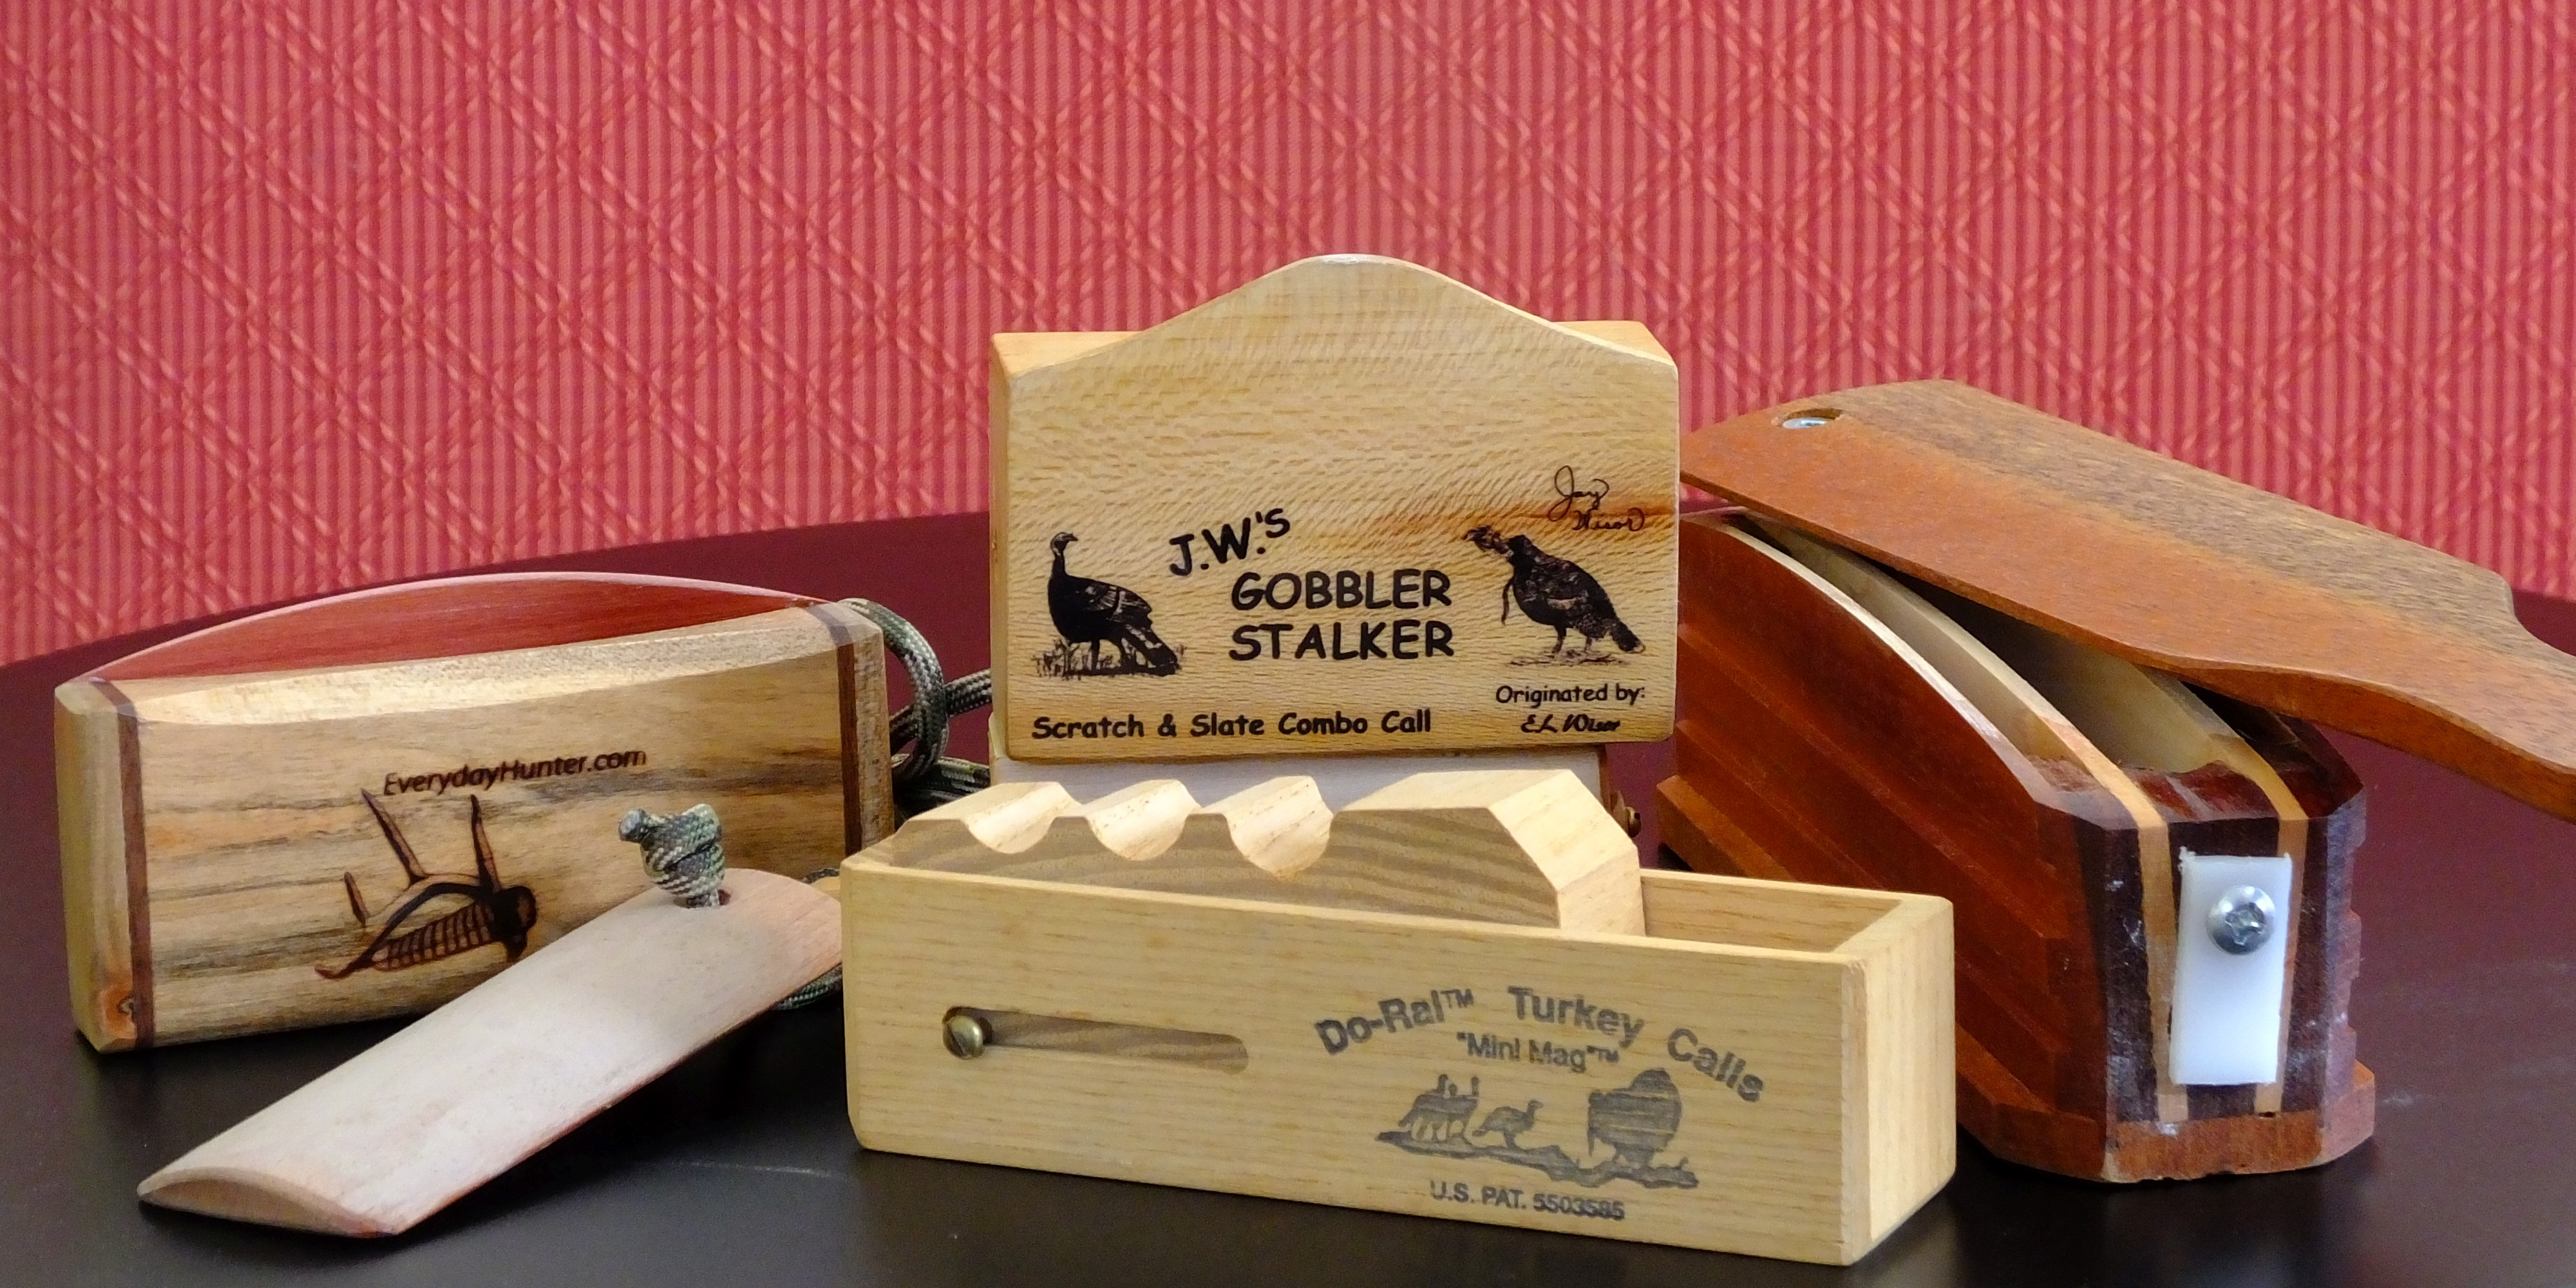 Turkey calls come in an almost infinite number of designs, most of which are pretty simple — simple enough that you can probably create one that will fool a gobbler.